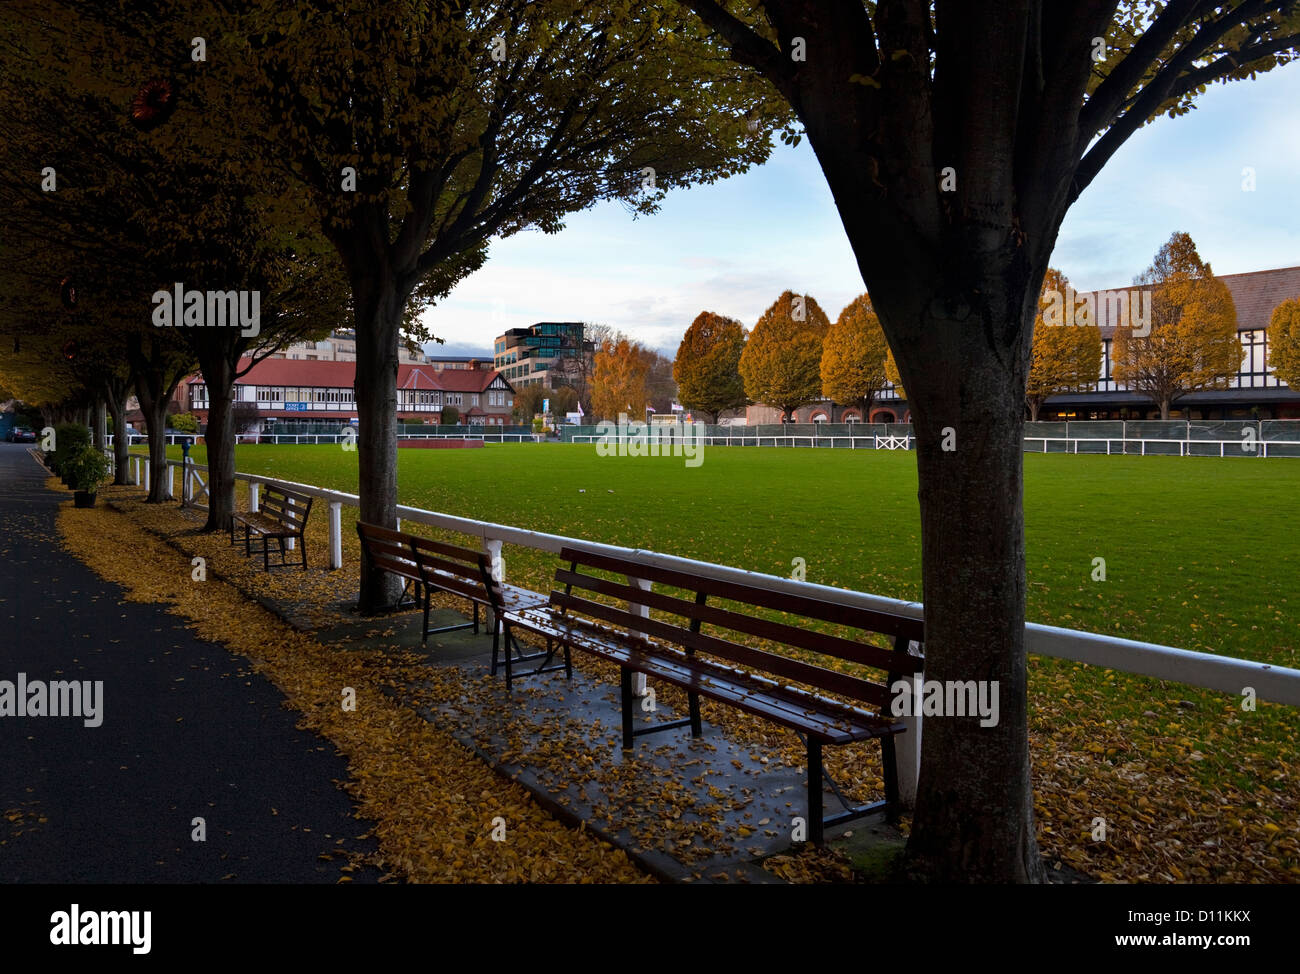 Autumn in the RDS - Royal Dublin Showground founded in 1731, Dublin City, Ireland - Stock Image